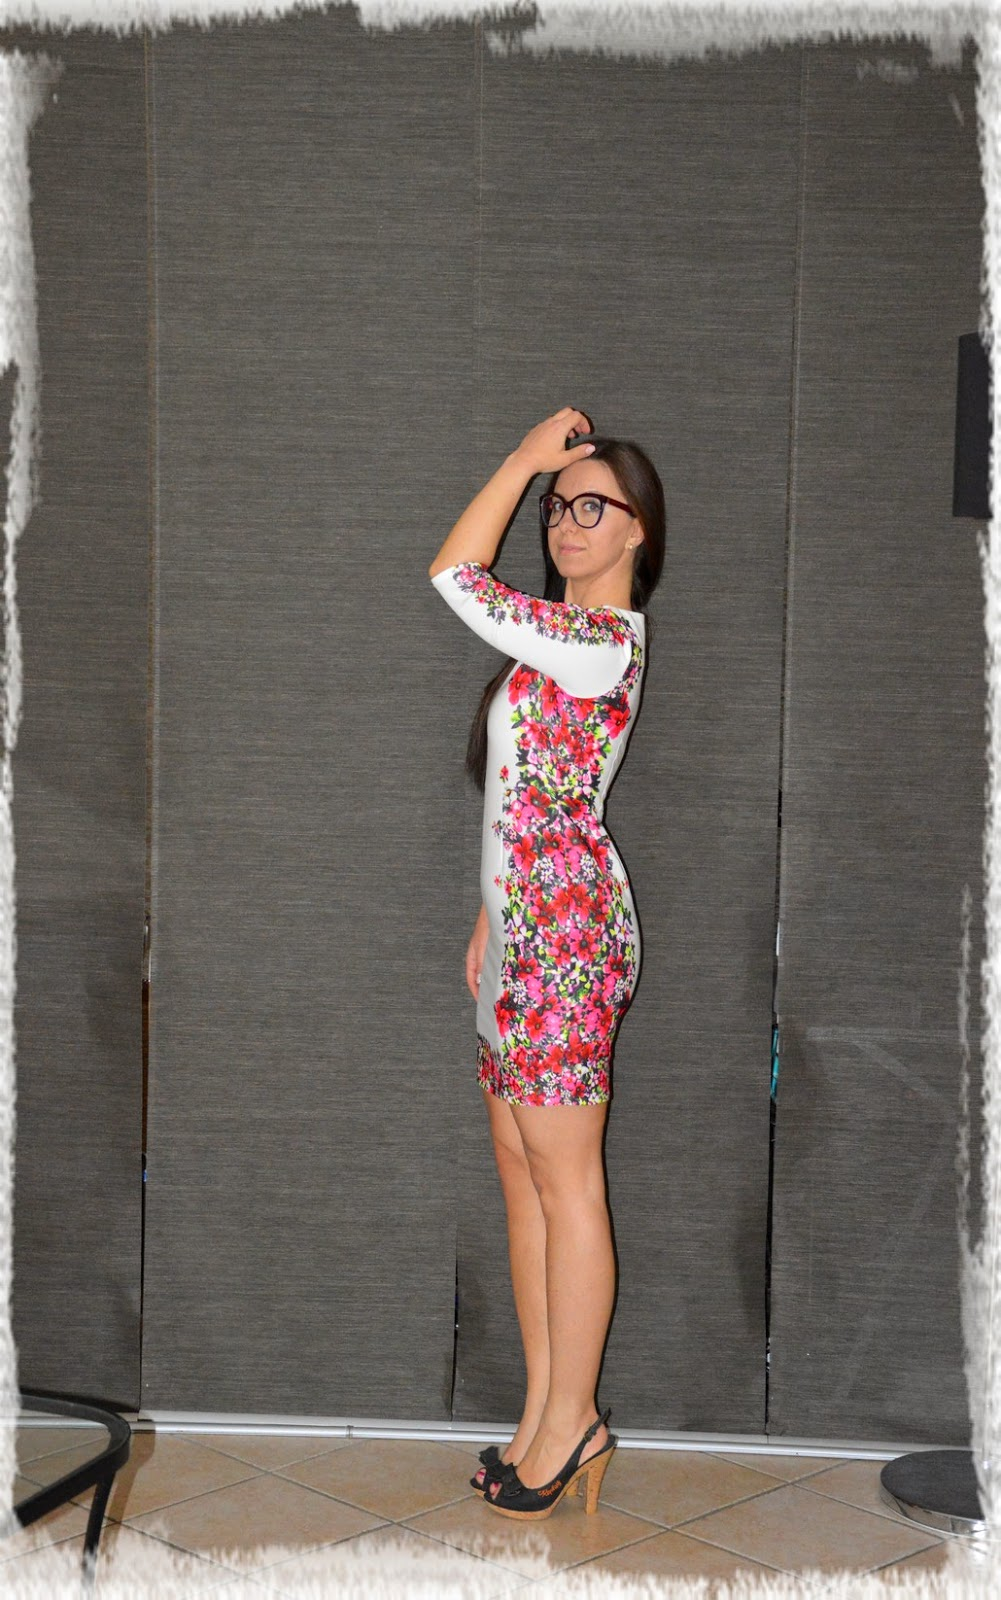 Let's Spring with OASAP floral dress - Primaveriamo con l'abito floreale da Oasap